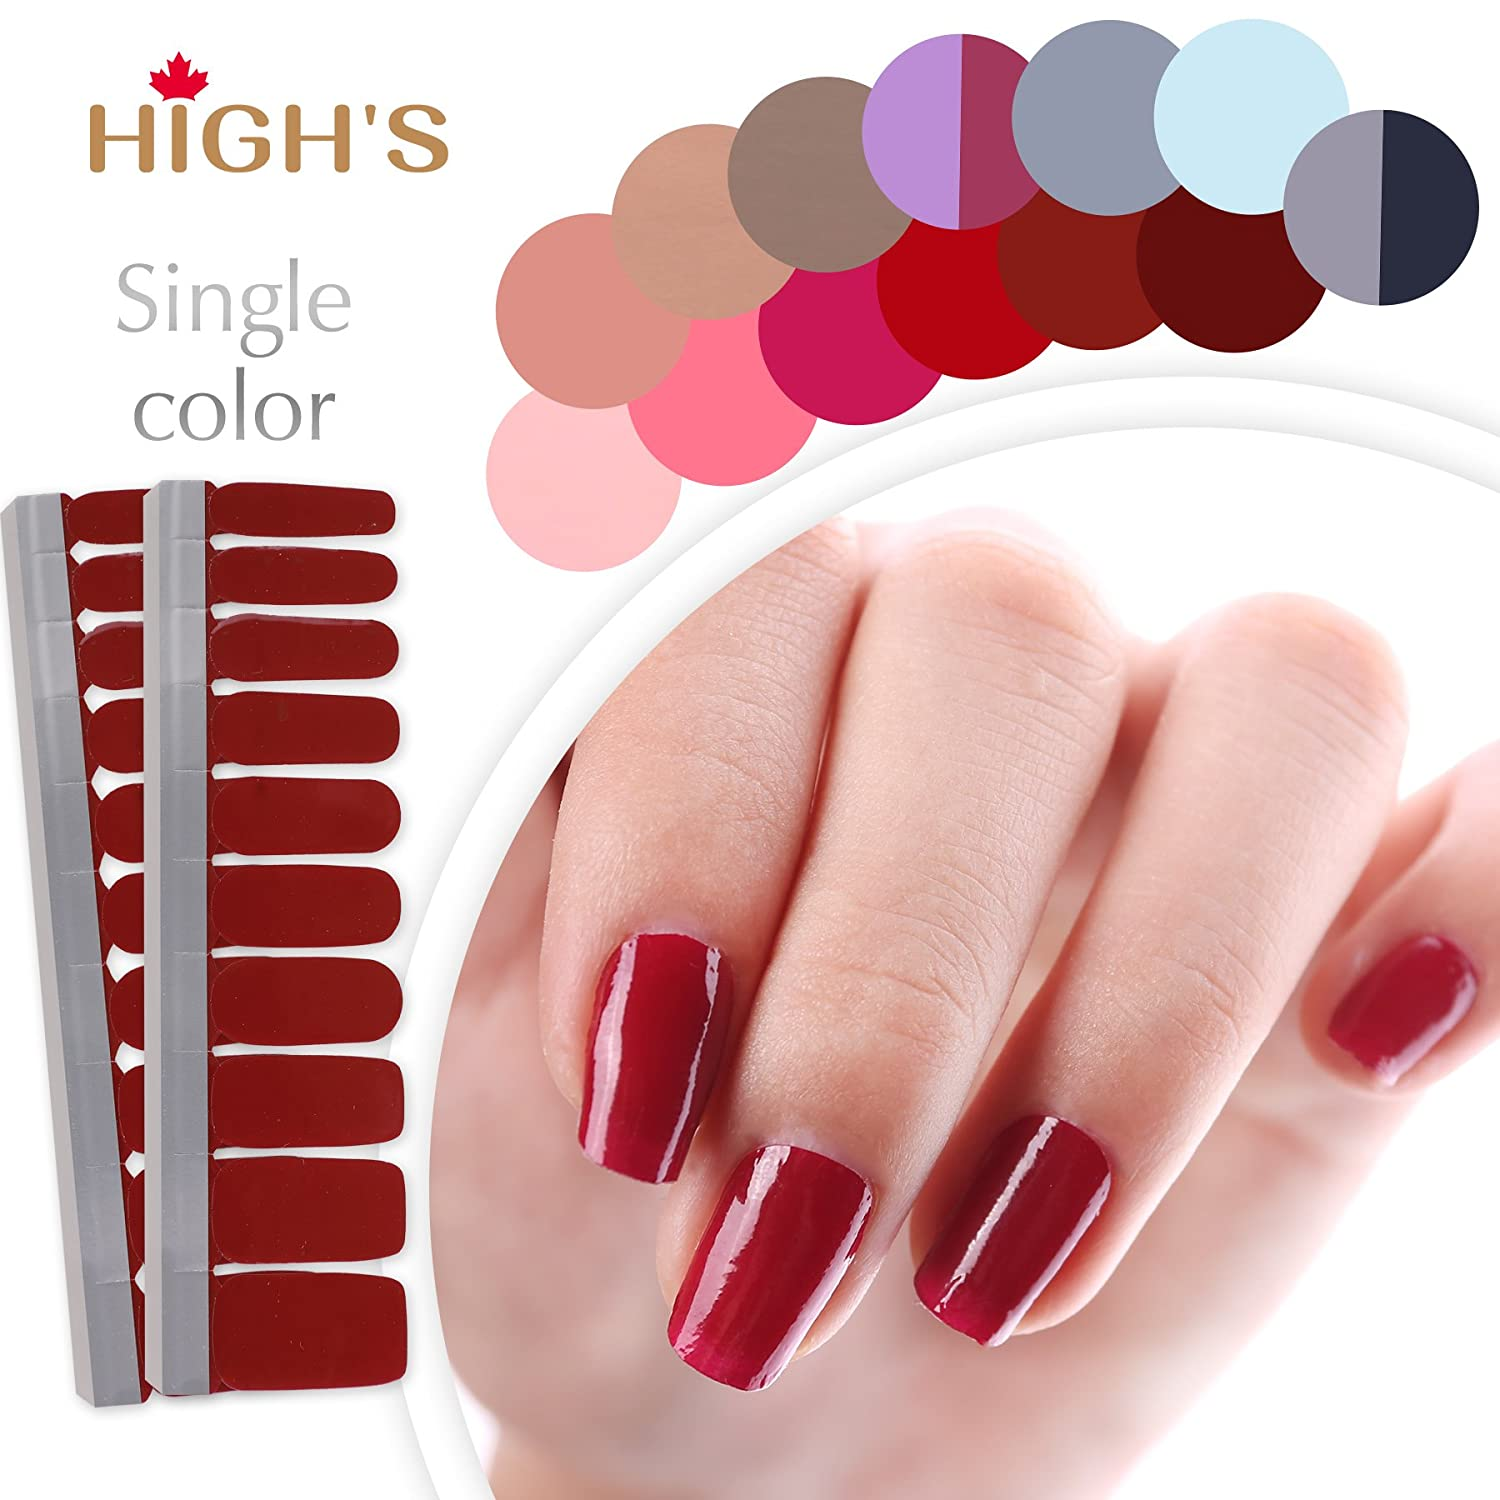 HIGH'S Single Color Series 2016 Fall Collection Manicure Nail Polish Strips Nail Wraps, Grey Zone HIGH' S